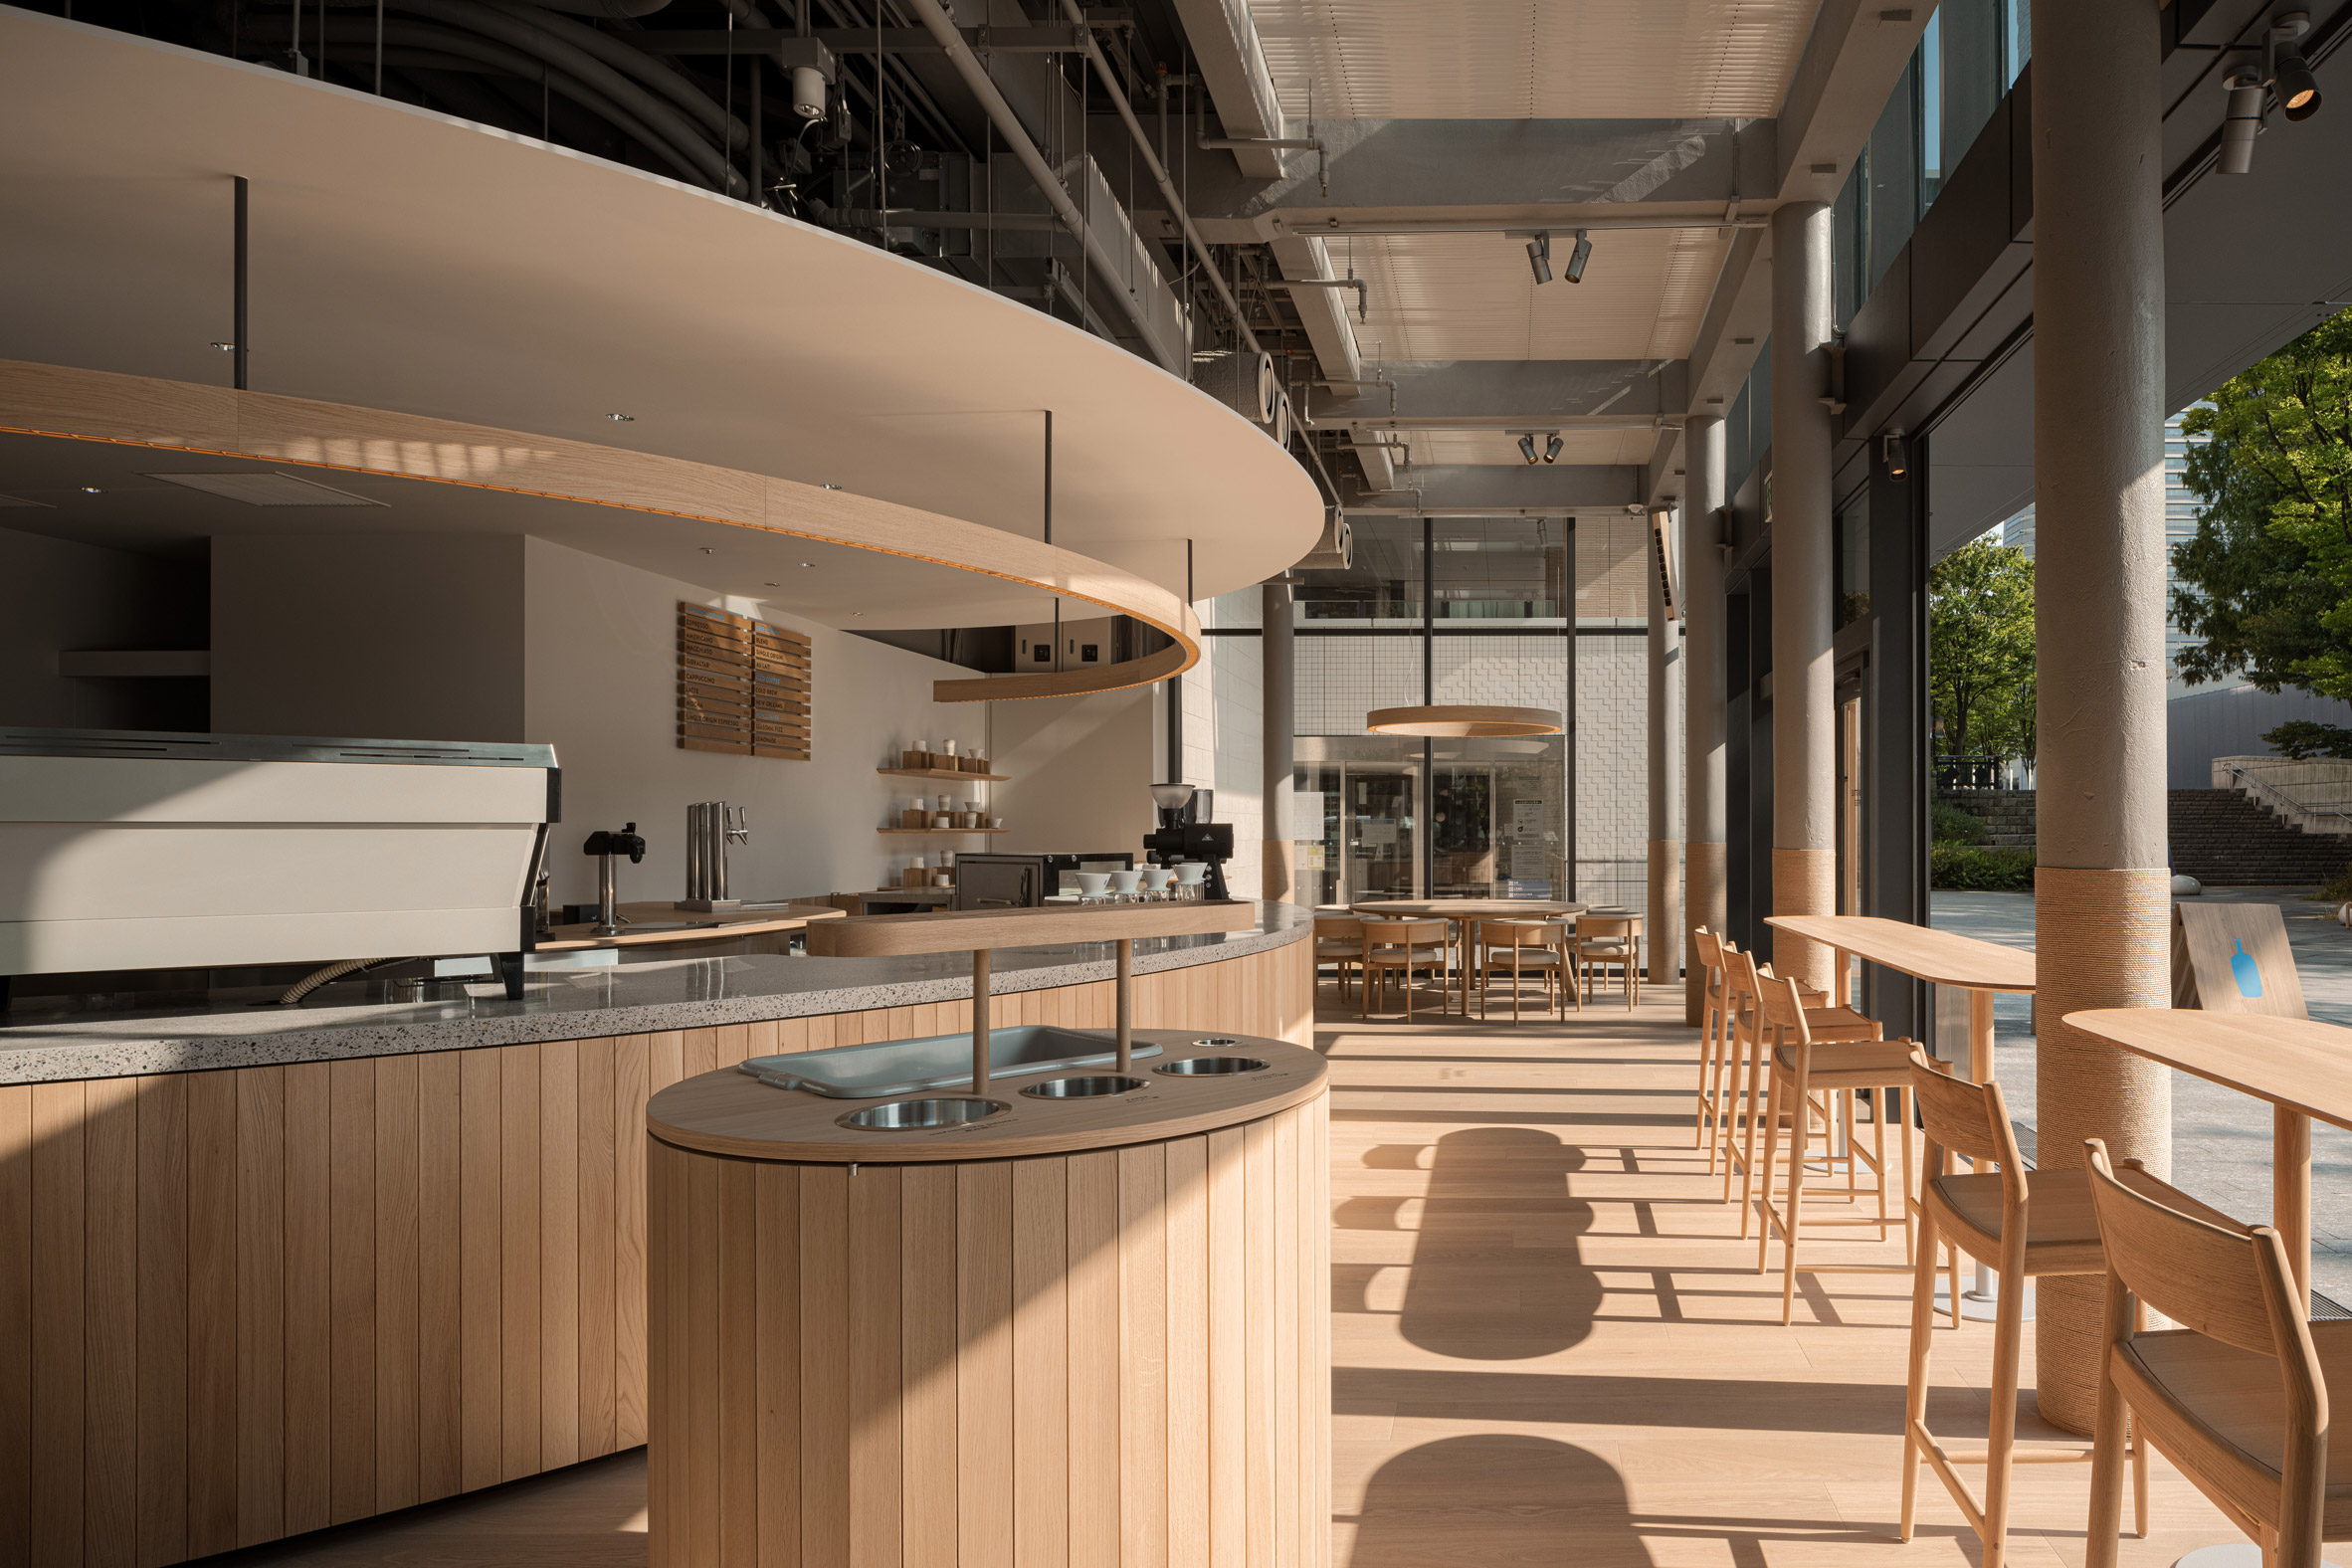 Interior of Blue Bottle Coffee cafe in Minatomirai